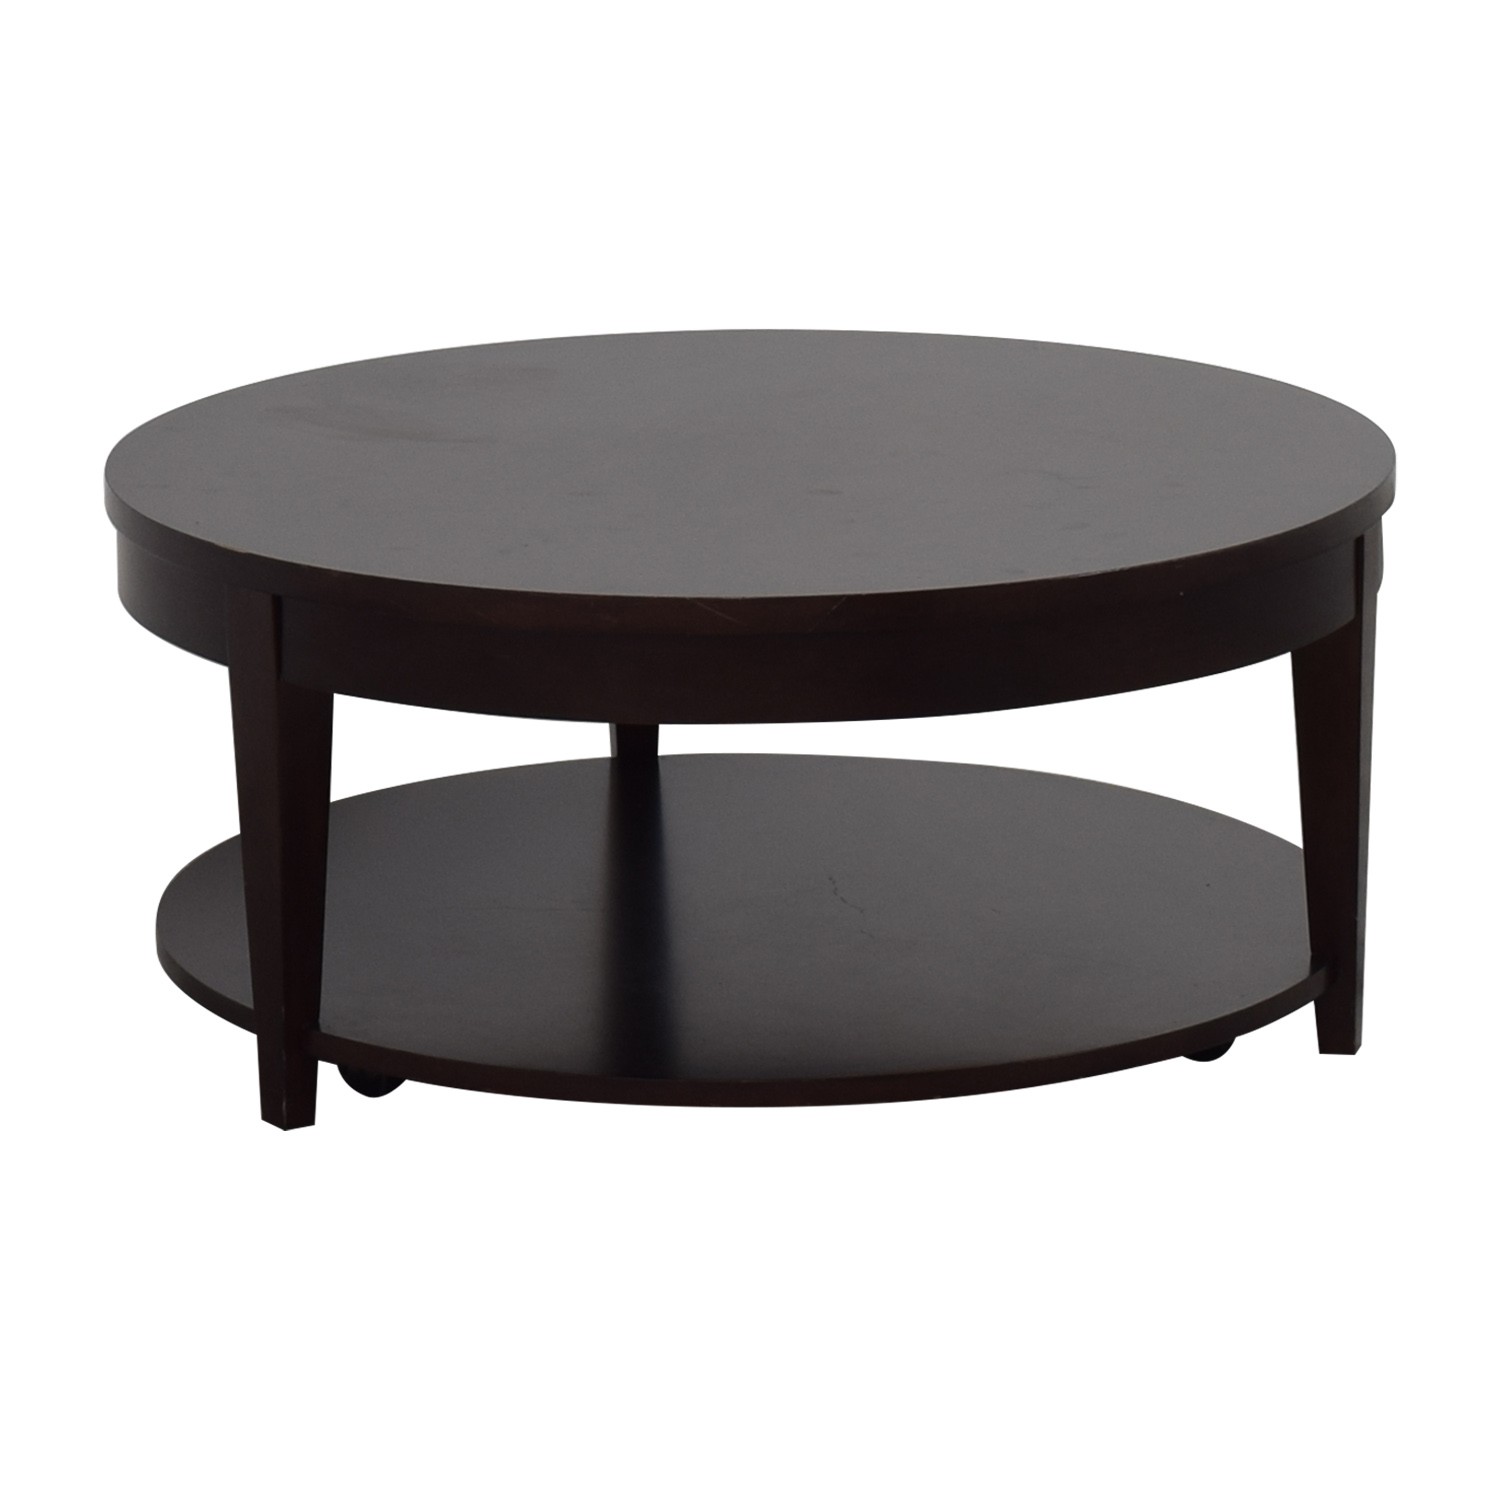 87 Off Macy 39 S Macy 39 S Modern Rolling Round Coffee Table Tables: round coffee table modern